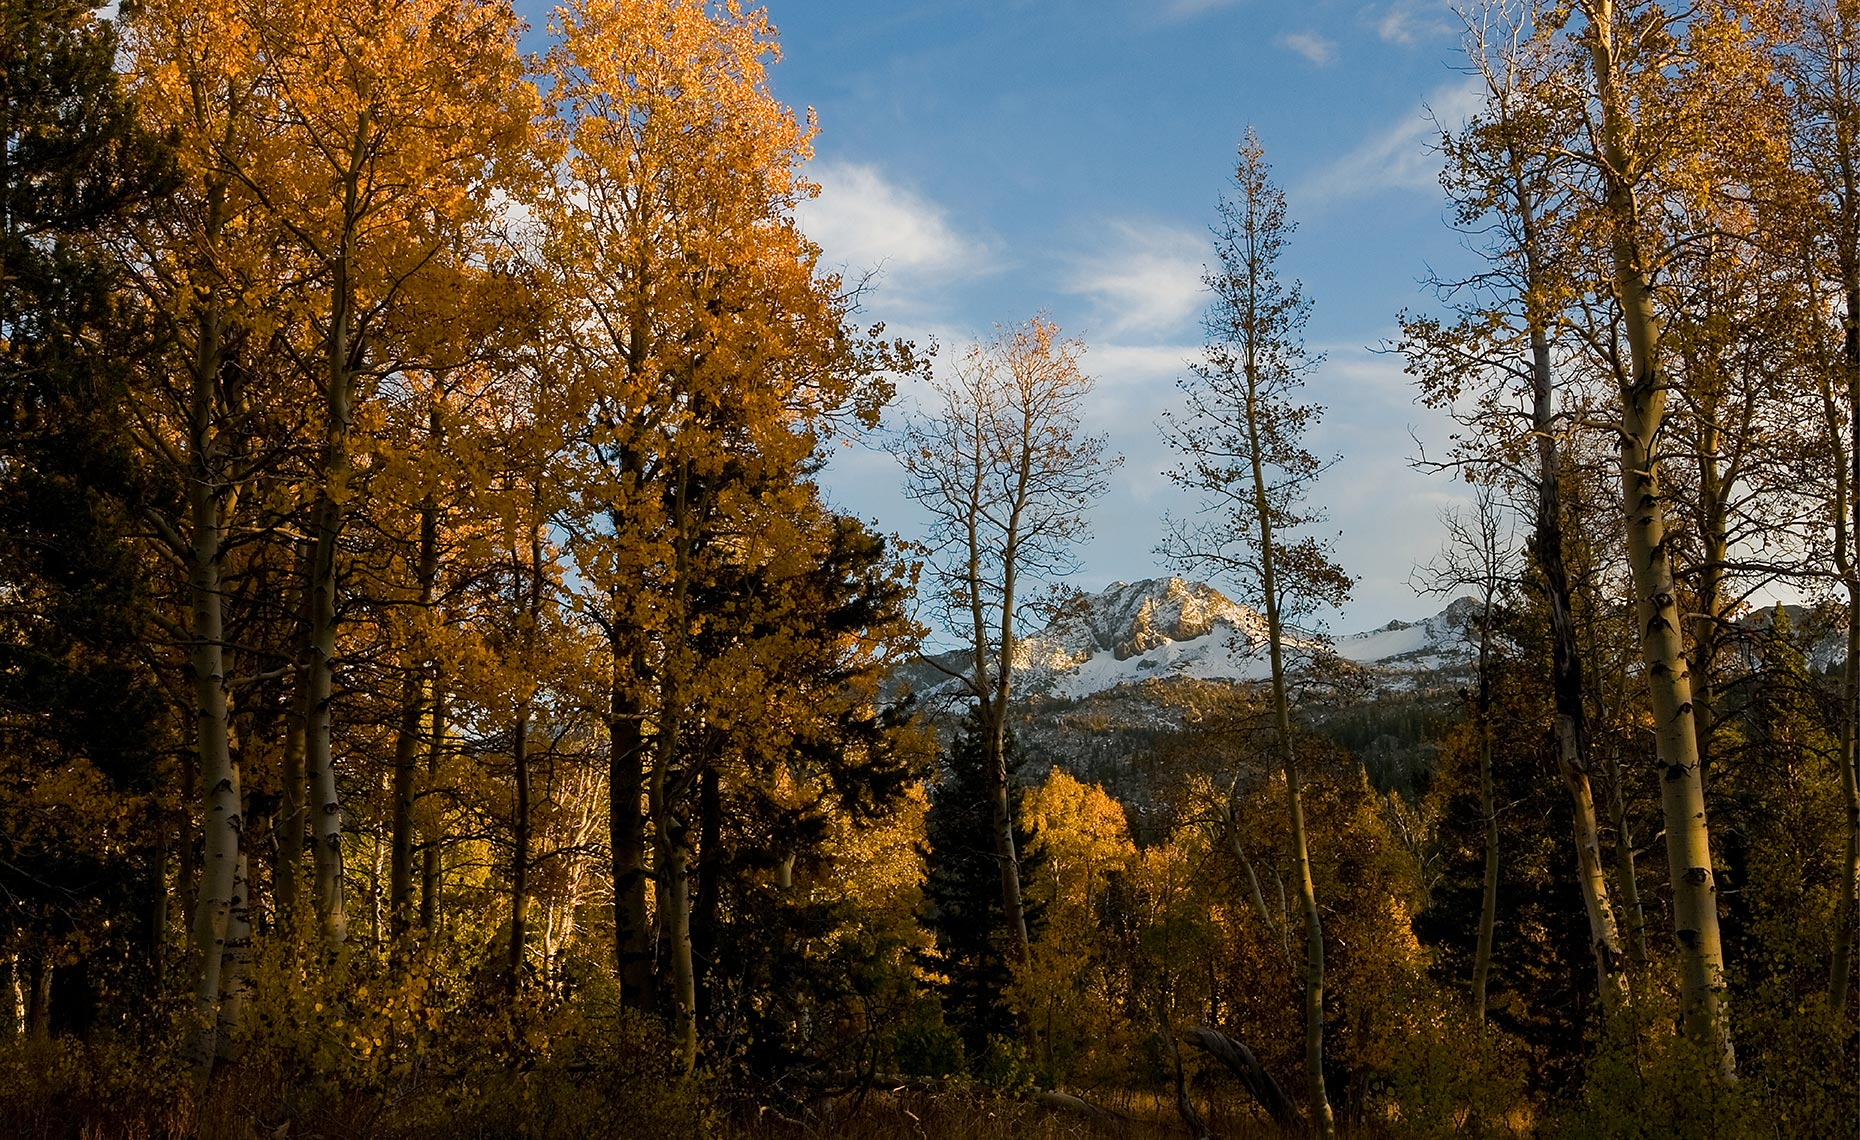 08_South_Lake_Tahoe_Roundtop_Fall_Colors_Backcountry_California_Environment_Landscape_Chris_Wellhausen_Photography.JPG